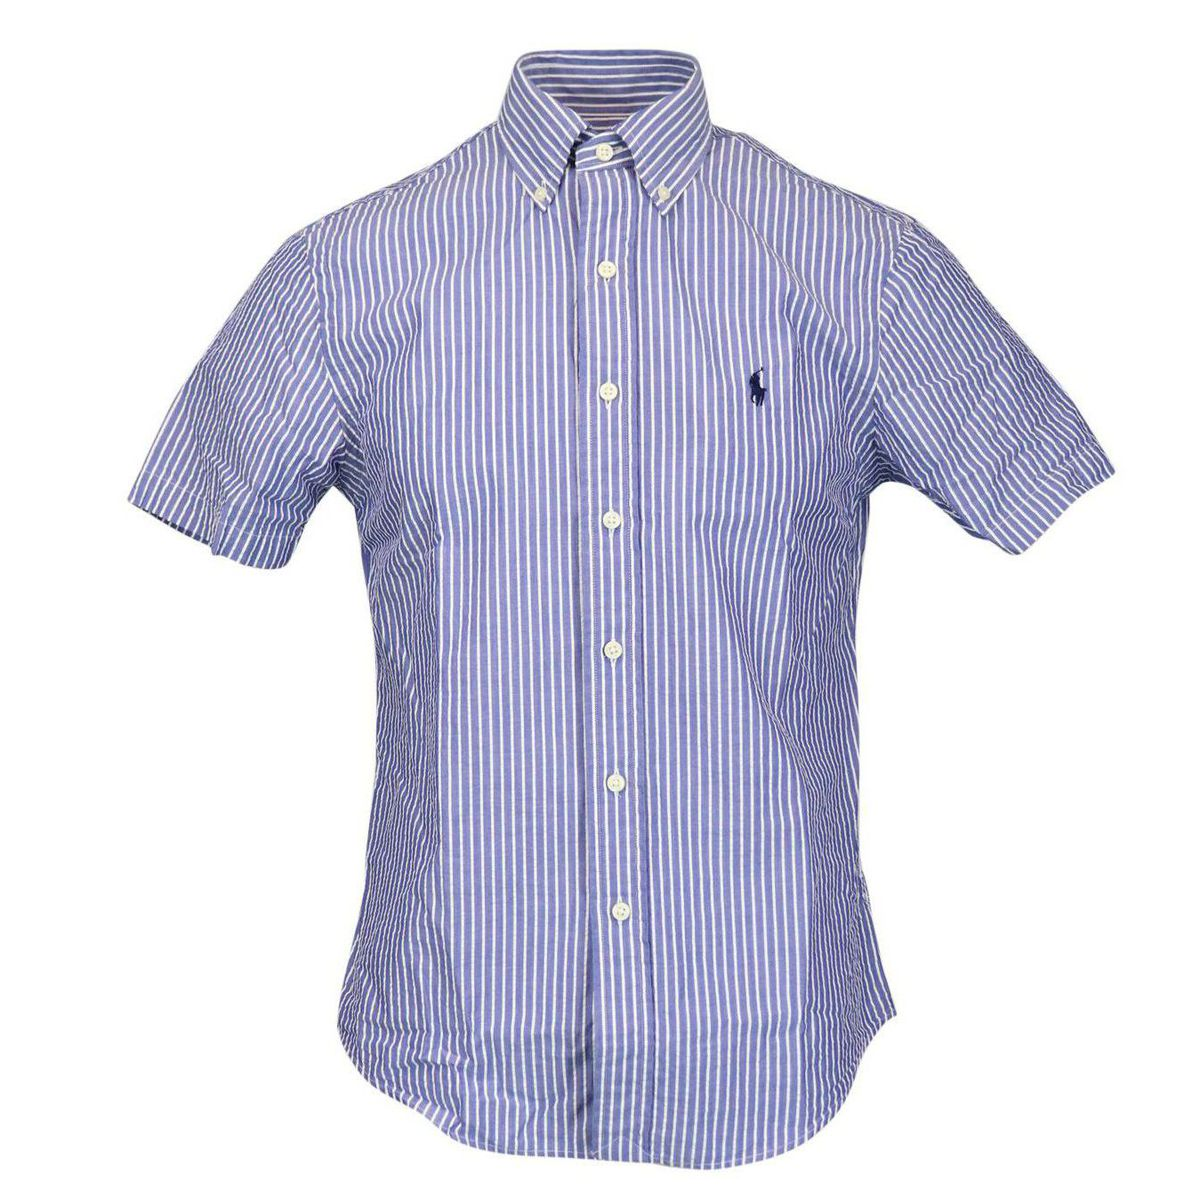 Custom-fit button-down cotton shirt Navy / b.co Polo Ralph Lauren